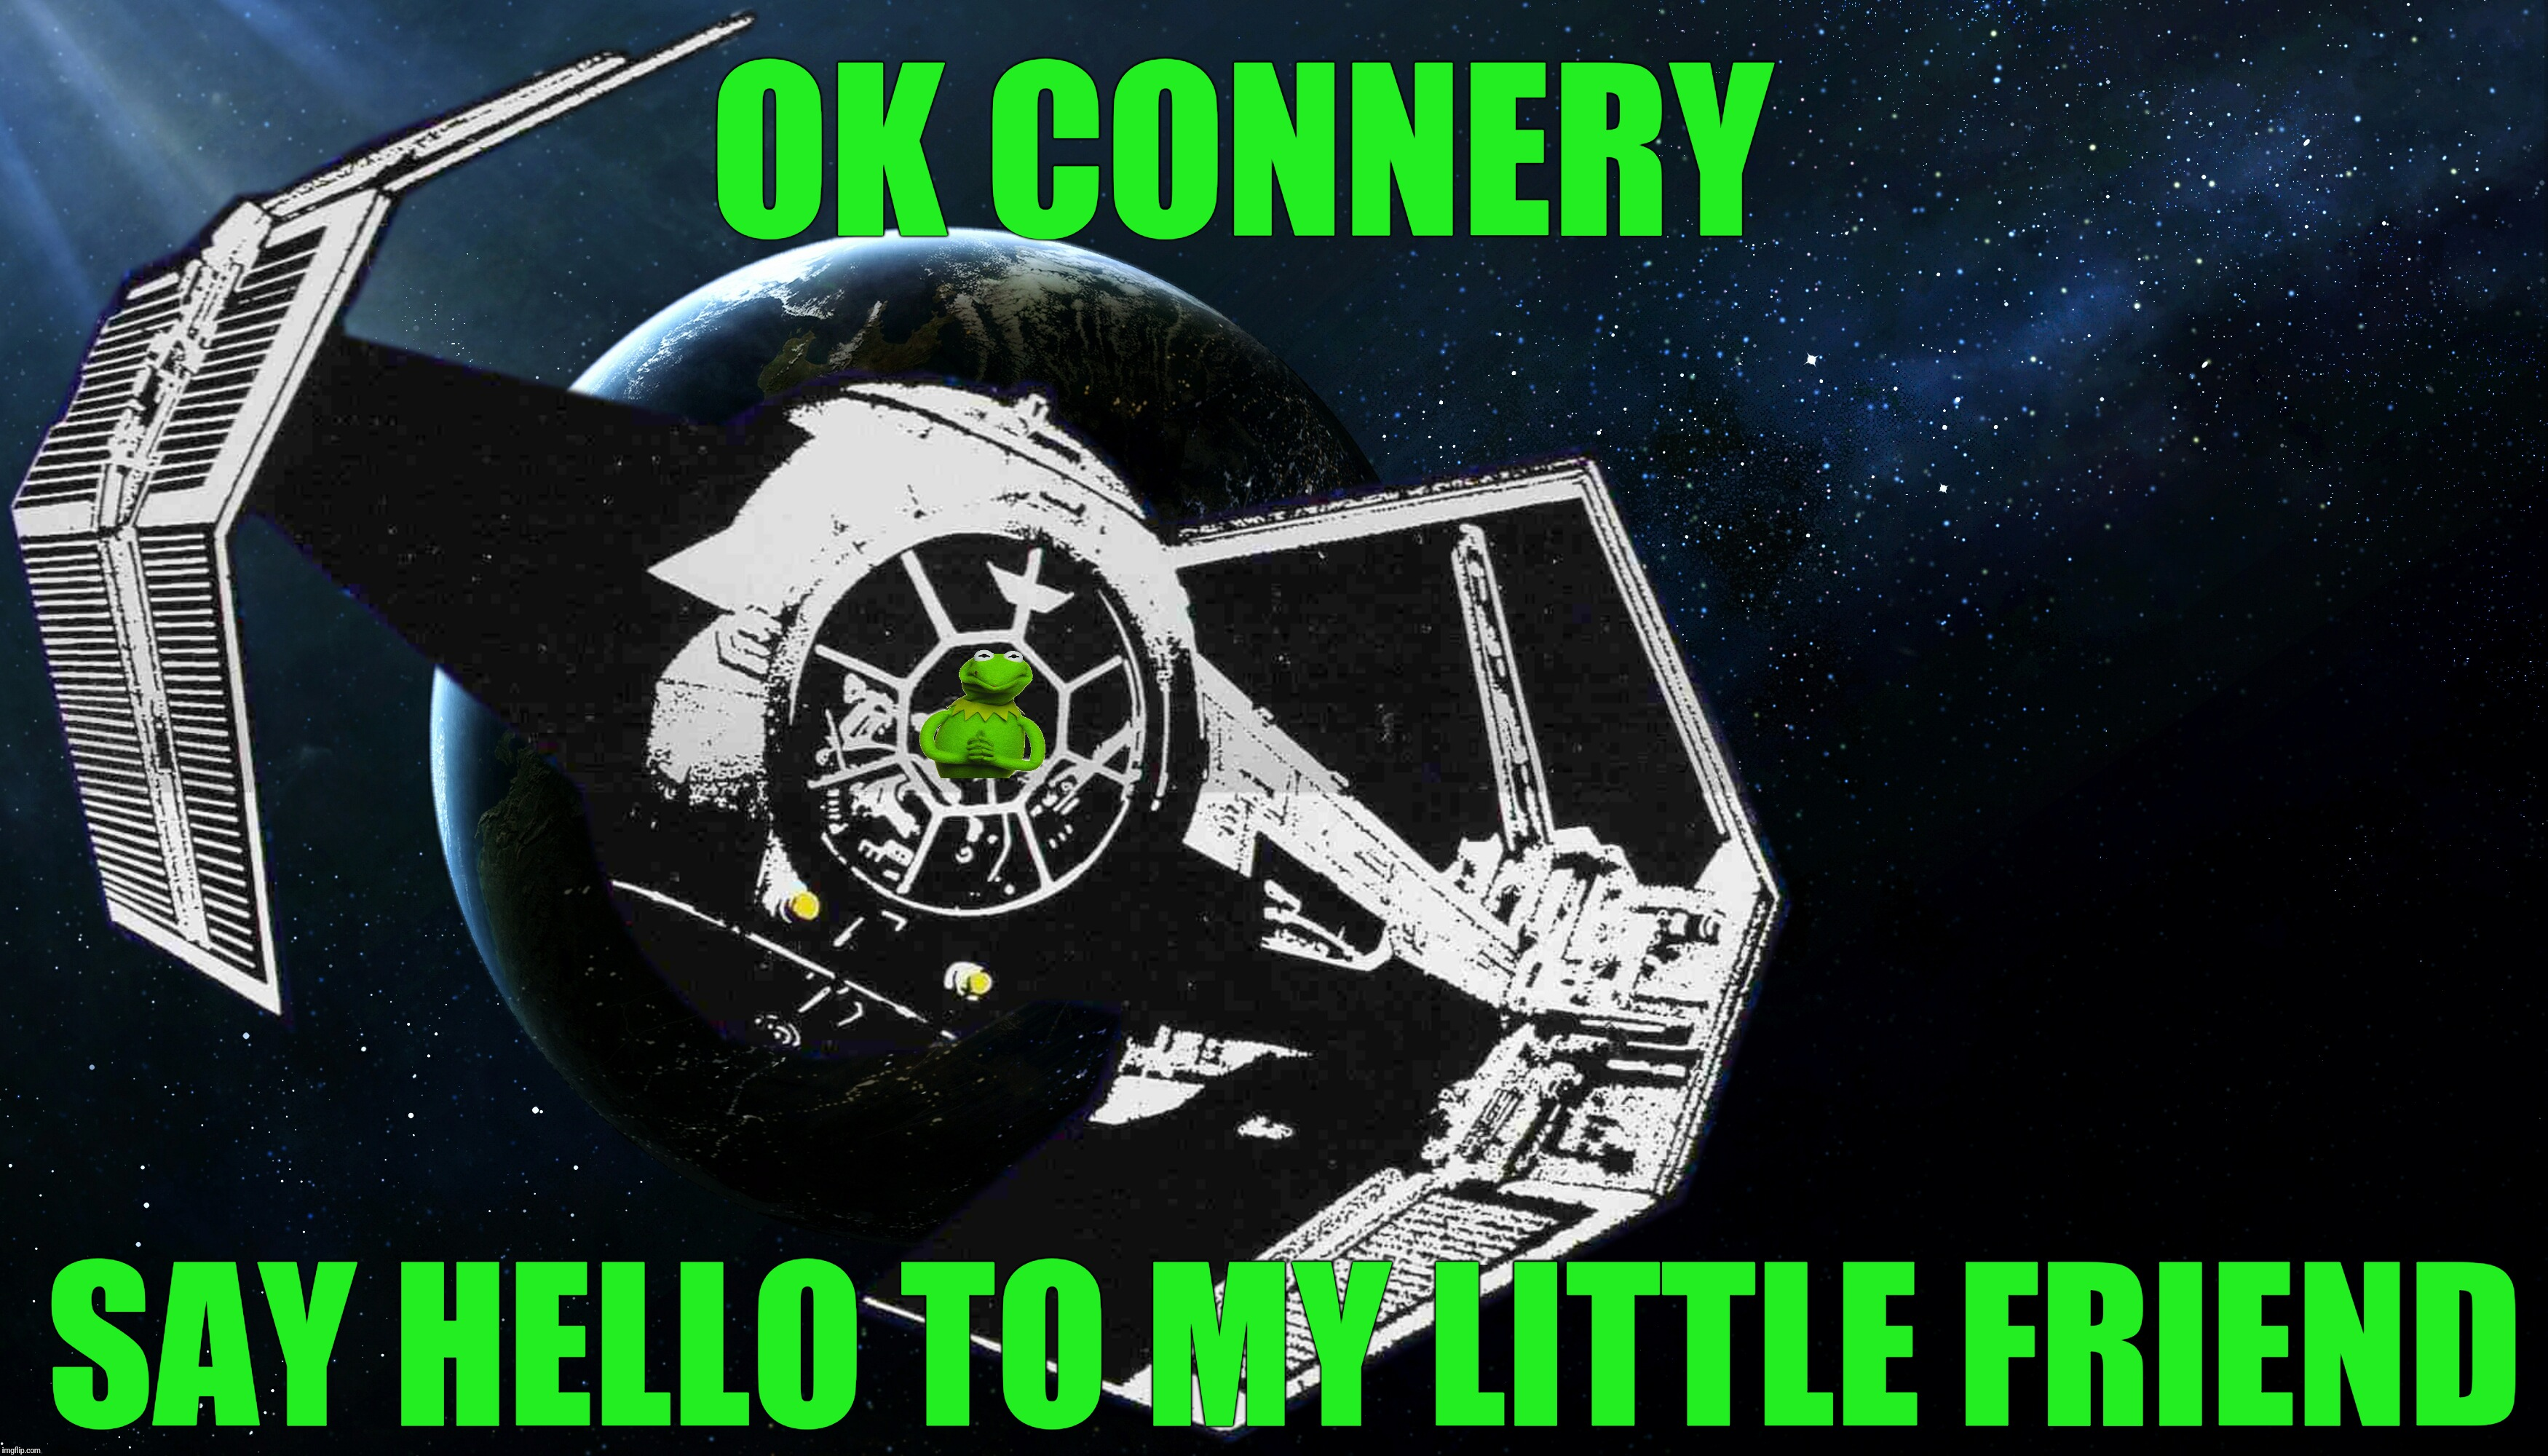 Kermit has turned to the dark side | OK CONNERY SAY HELLO TO MY LITTLE FRIEND | image tagged in memes,kermit vs connery,scarface,breaking the fourth wall,movie quotes,star wars | made w/ Imgflip meme maker